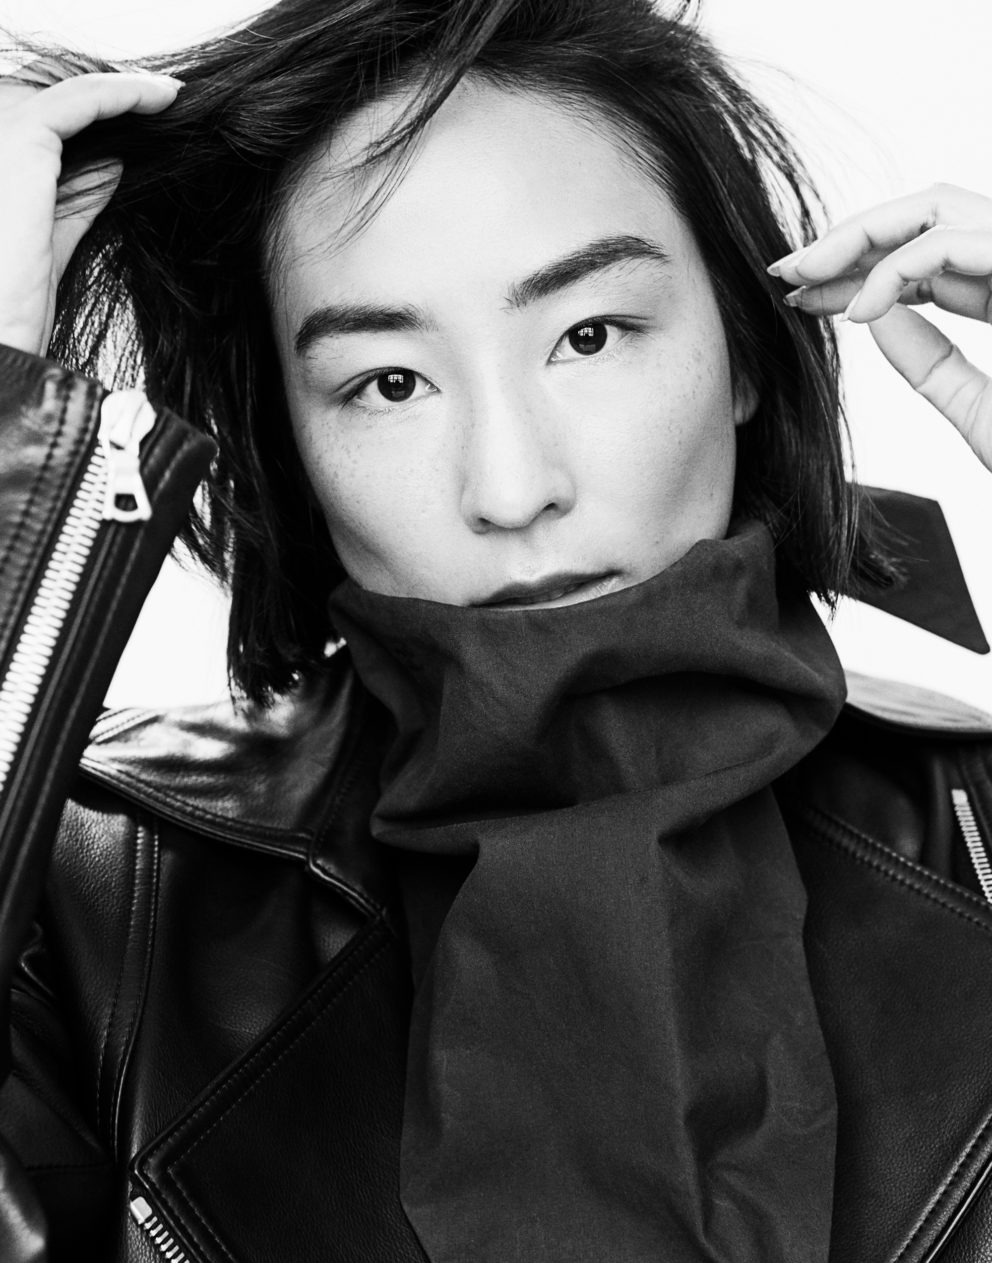 191020 0020 Sbjct Greta Lee 072 By Christian Chogstedt Web